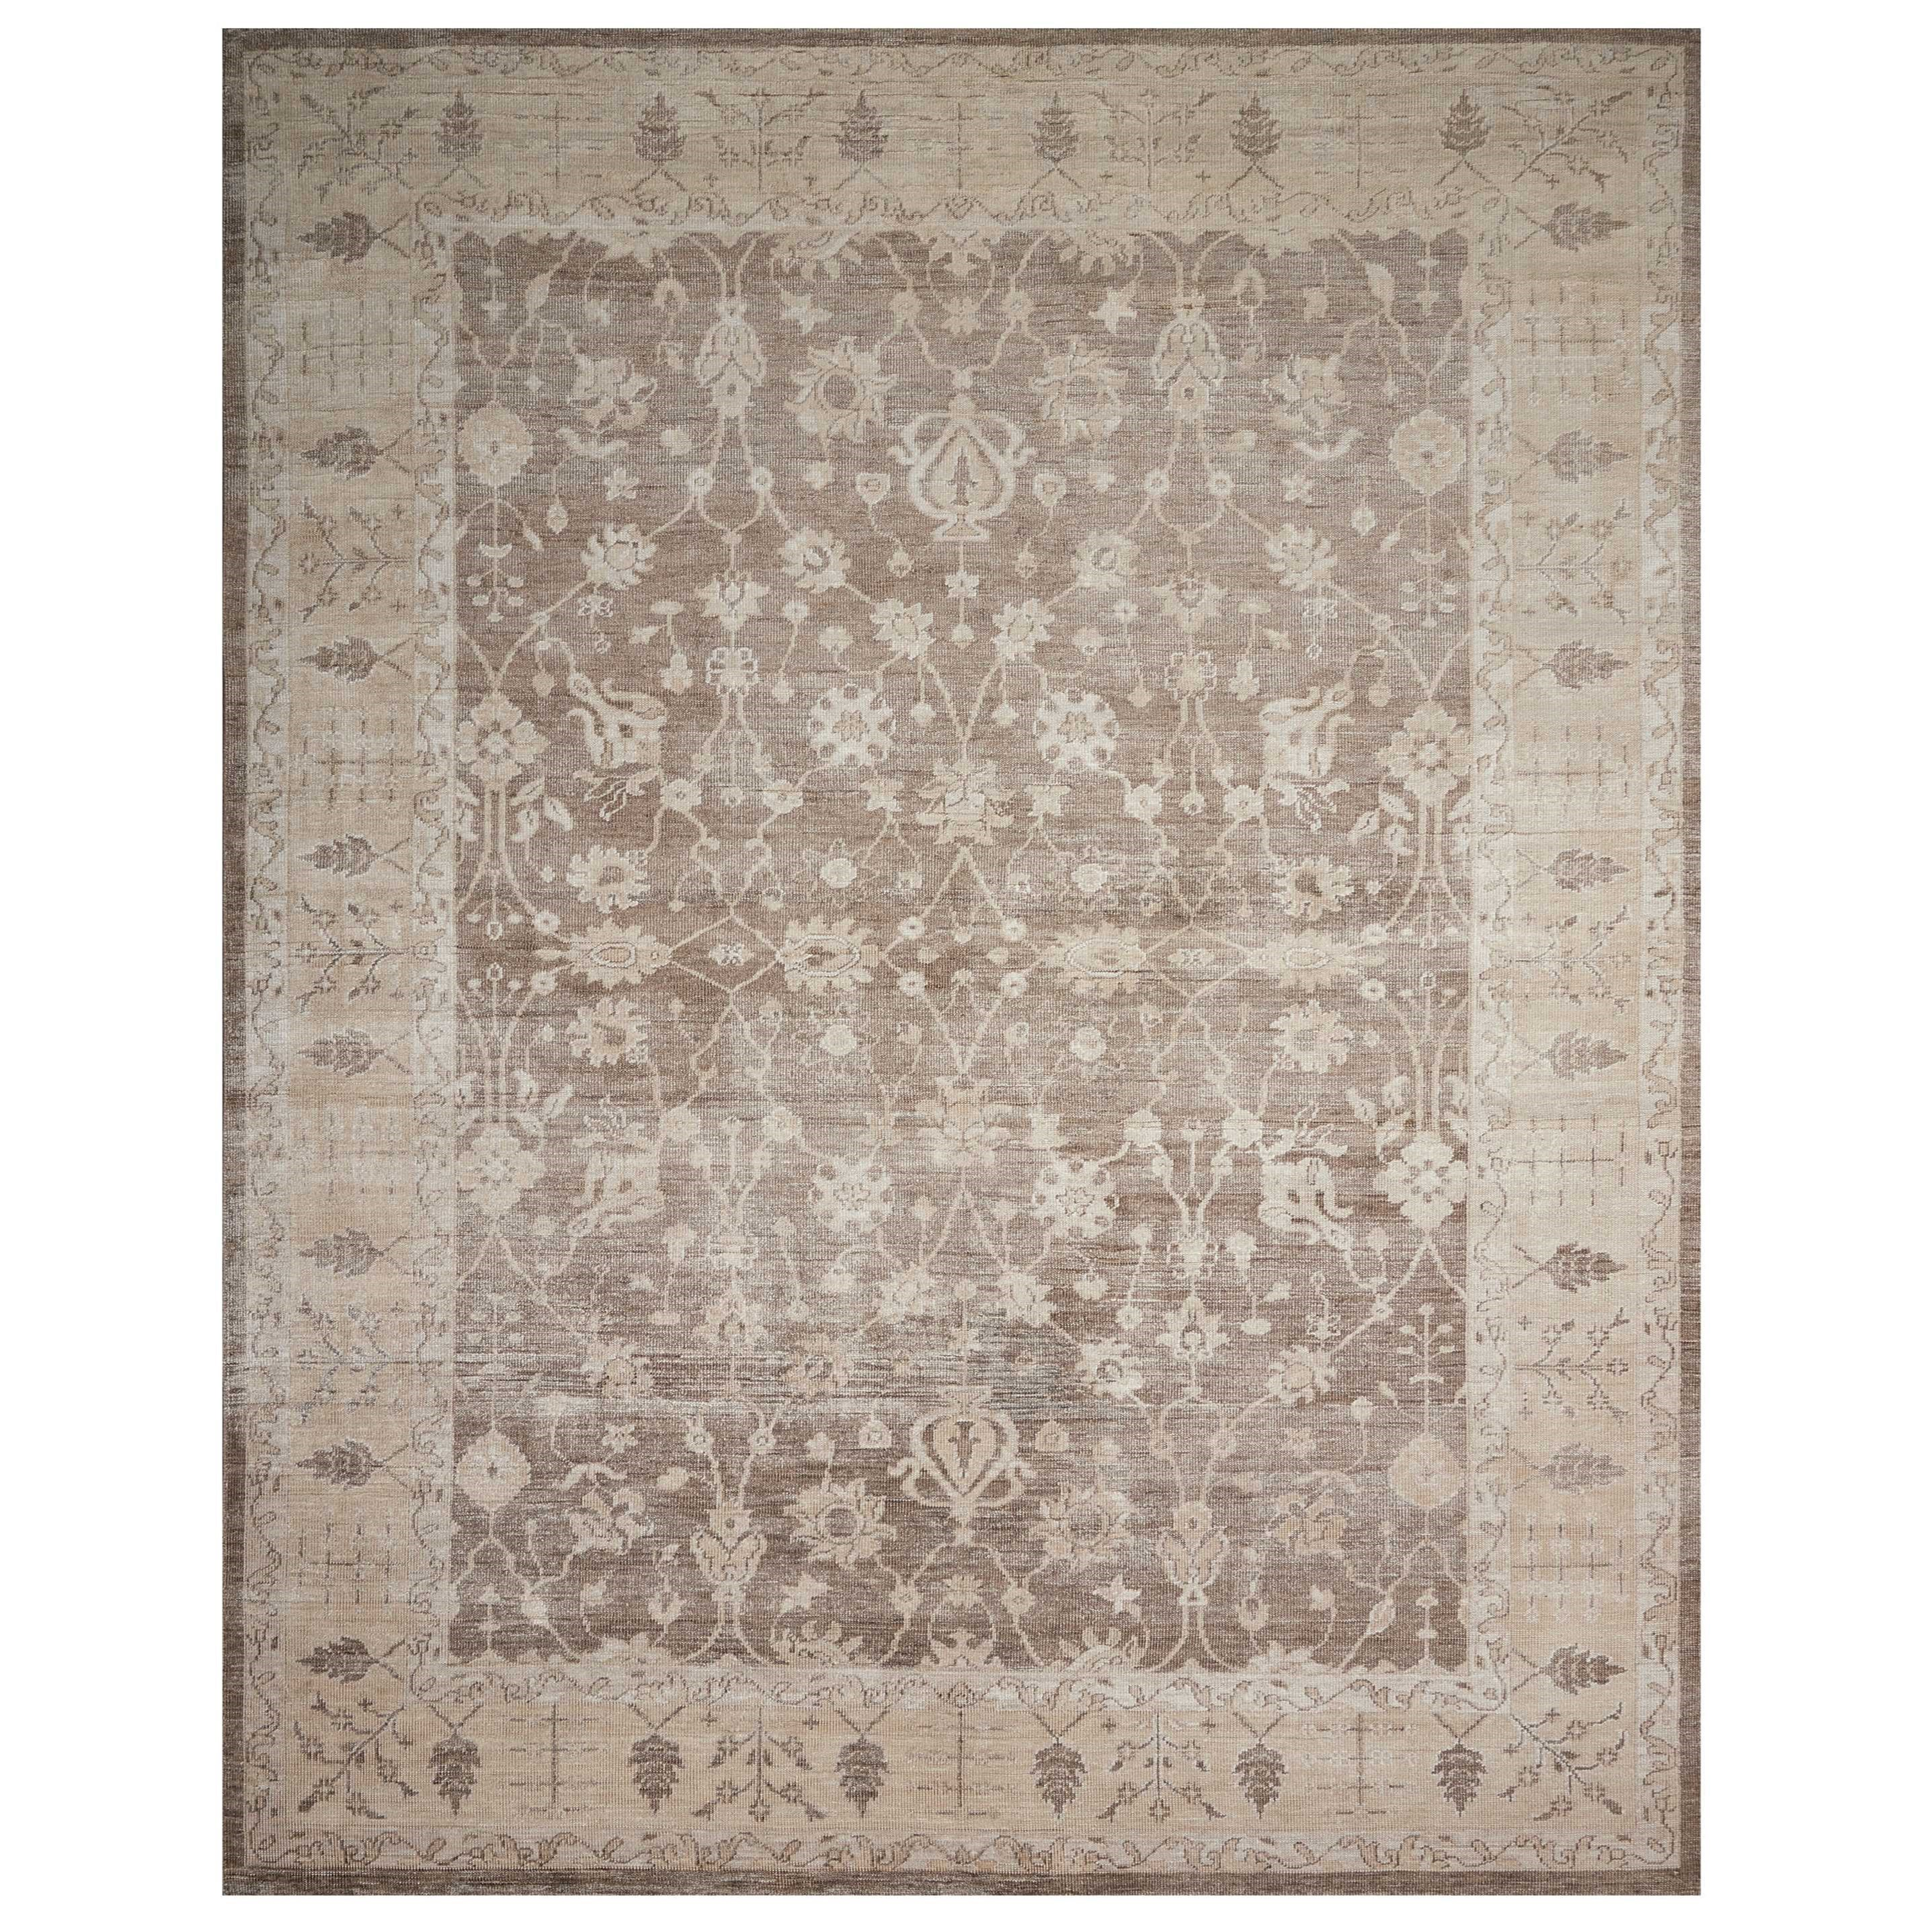 "Aldora1 7'9"" X 9'9"" Sand Rug by Nourison at Sprintz Furniture"